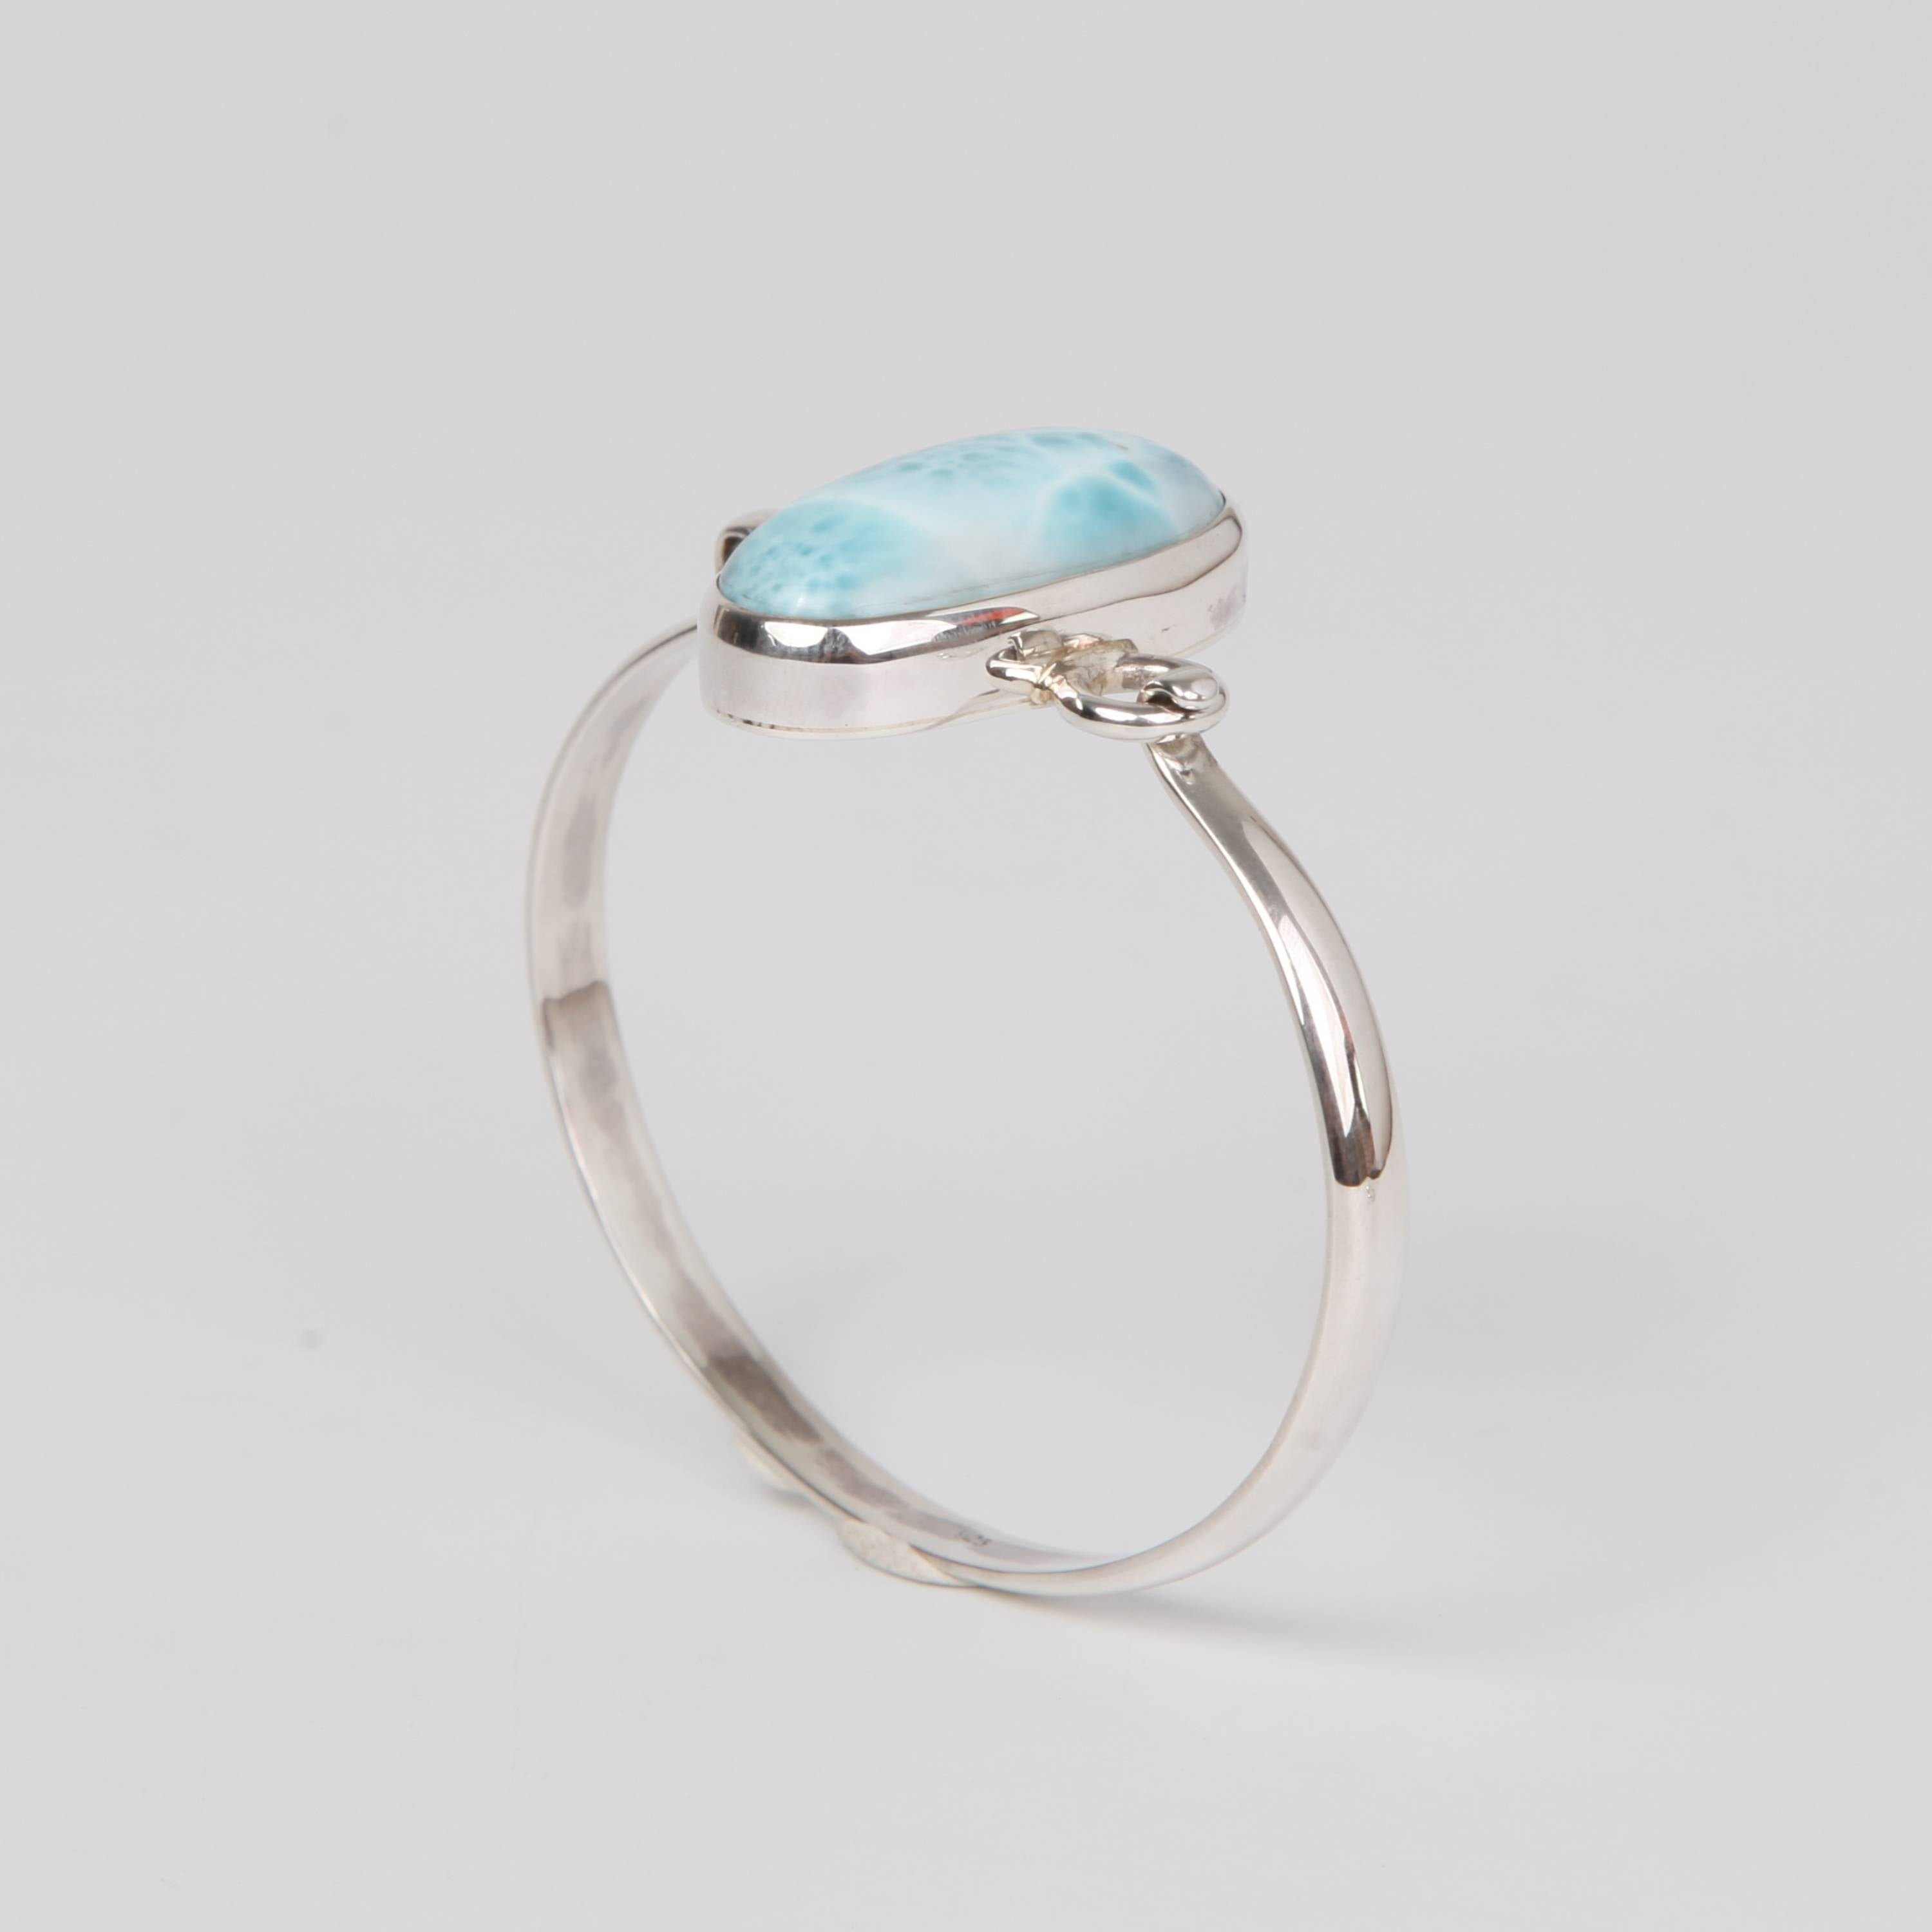 Sterling Silver Bangle with Larimar Stone